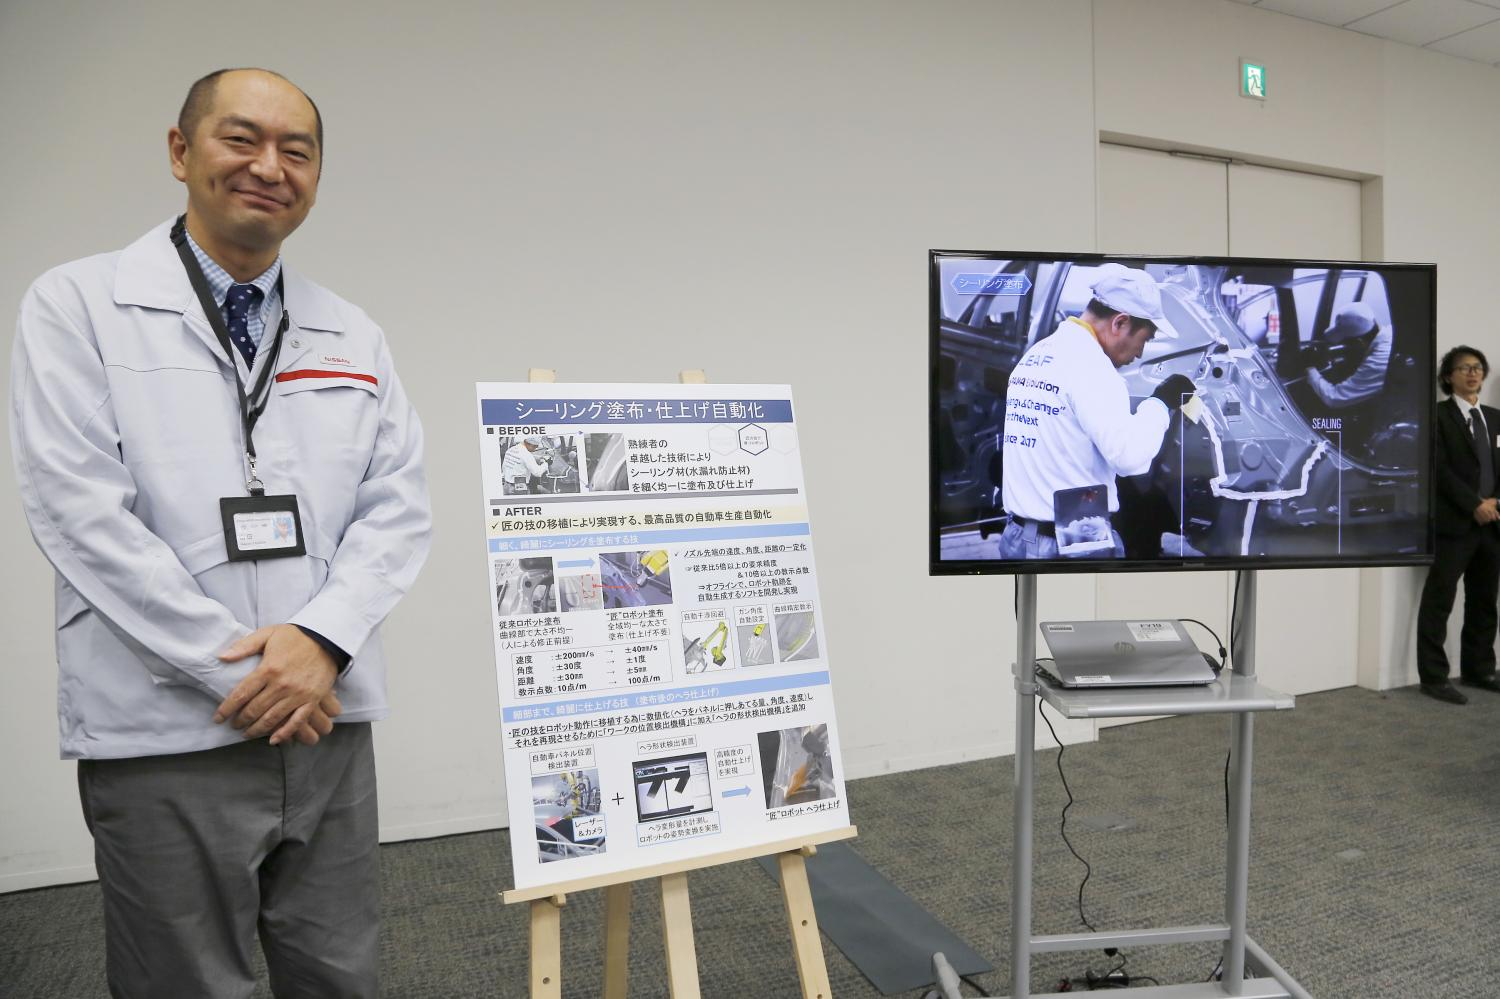 Engineer Makoto Yamada talks to reporters about using robotics for sealing as part of Nissan Motor Corp's new production methods during a press conference at the company's headquarter in Yokohama on Thursday. (AP photo)